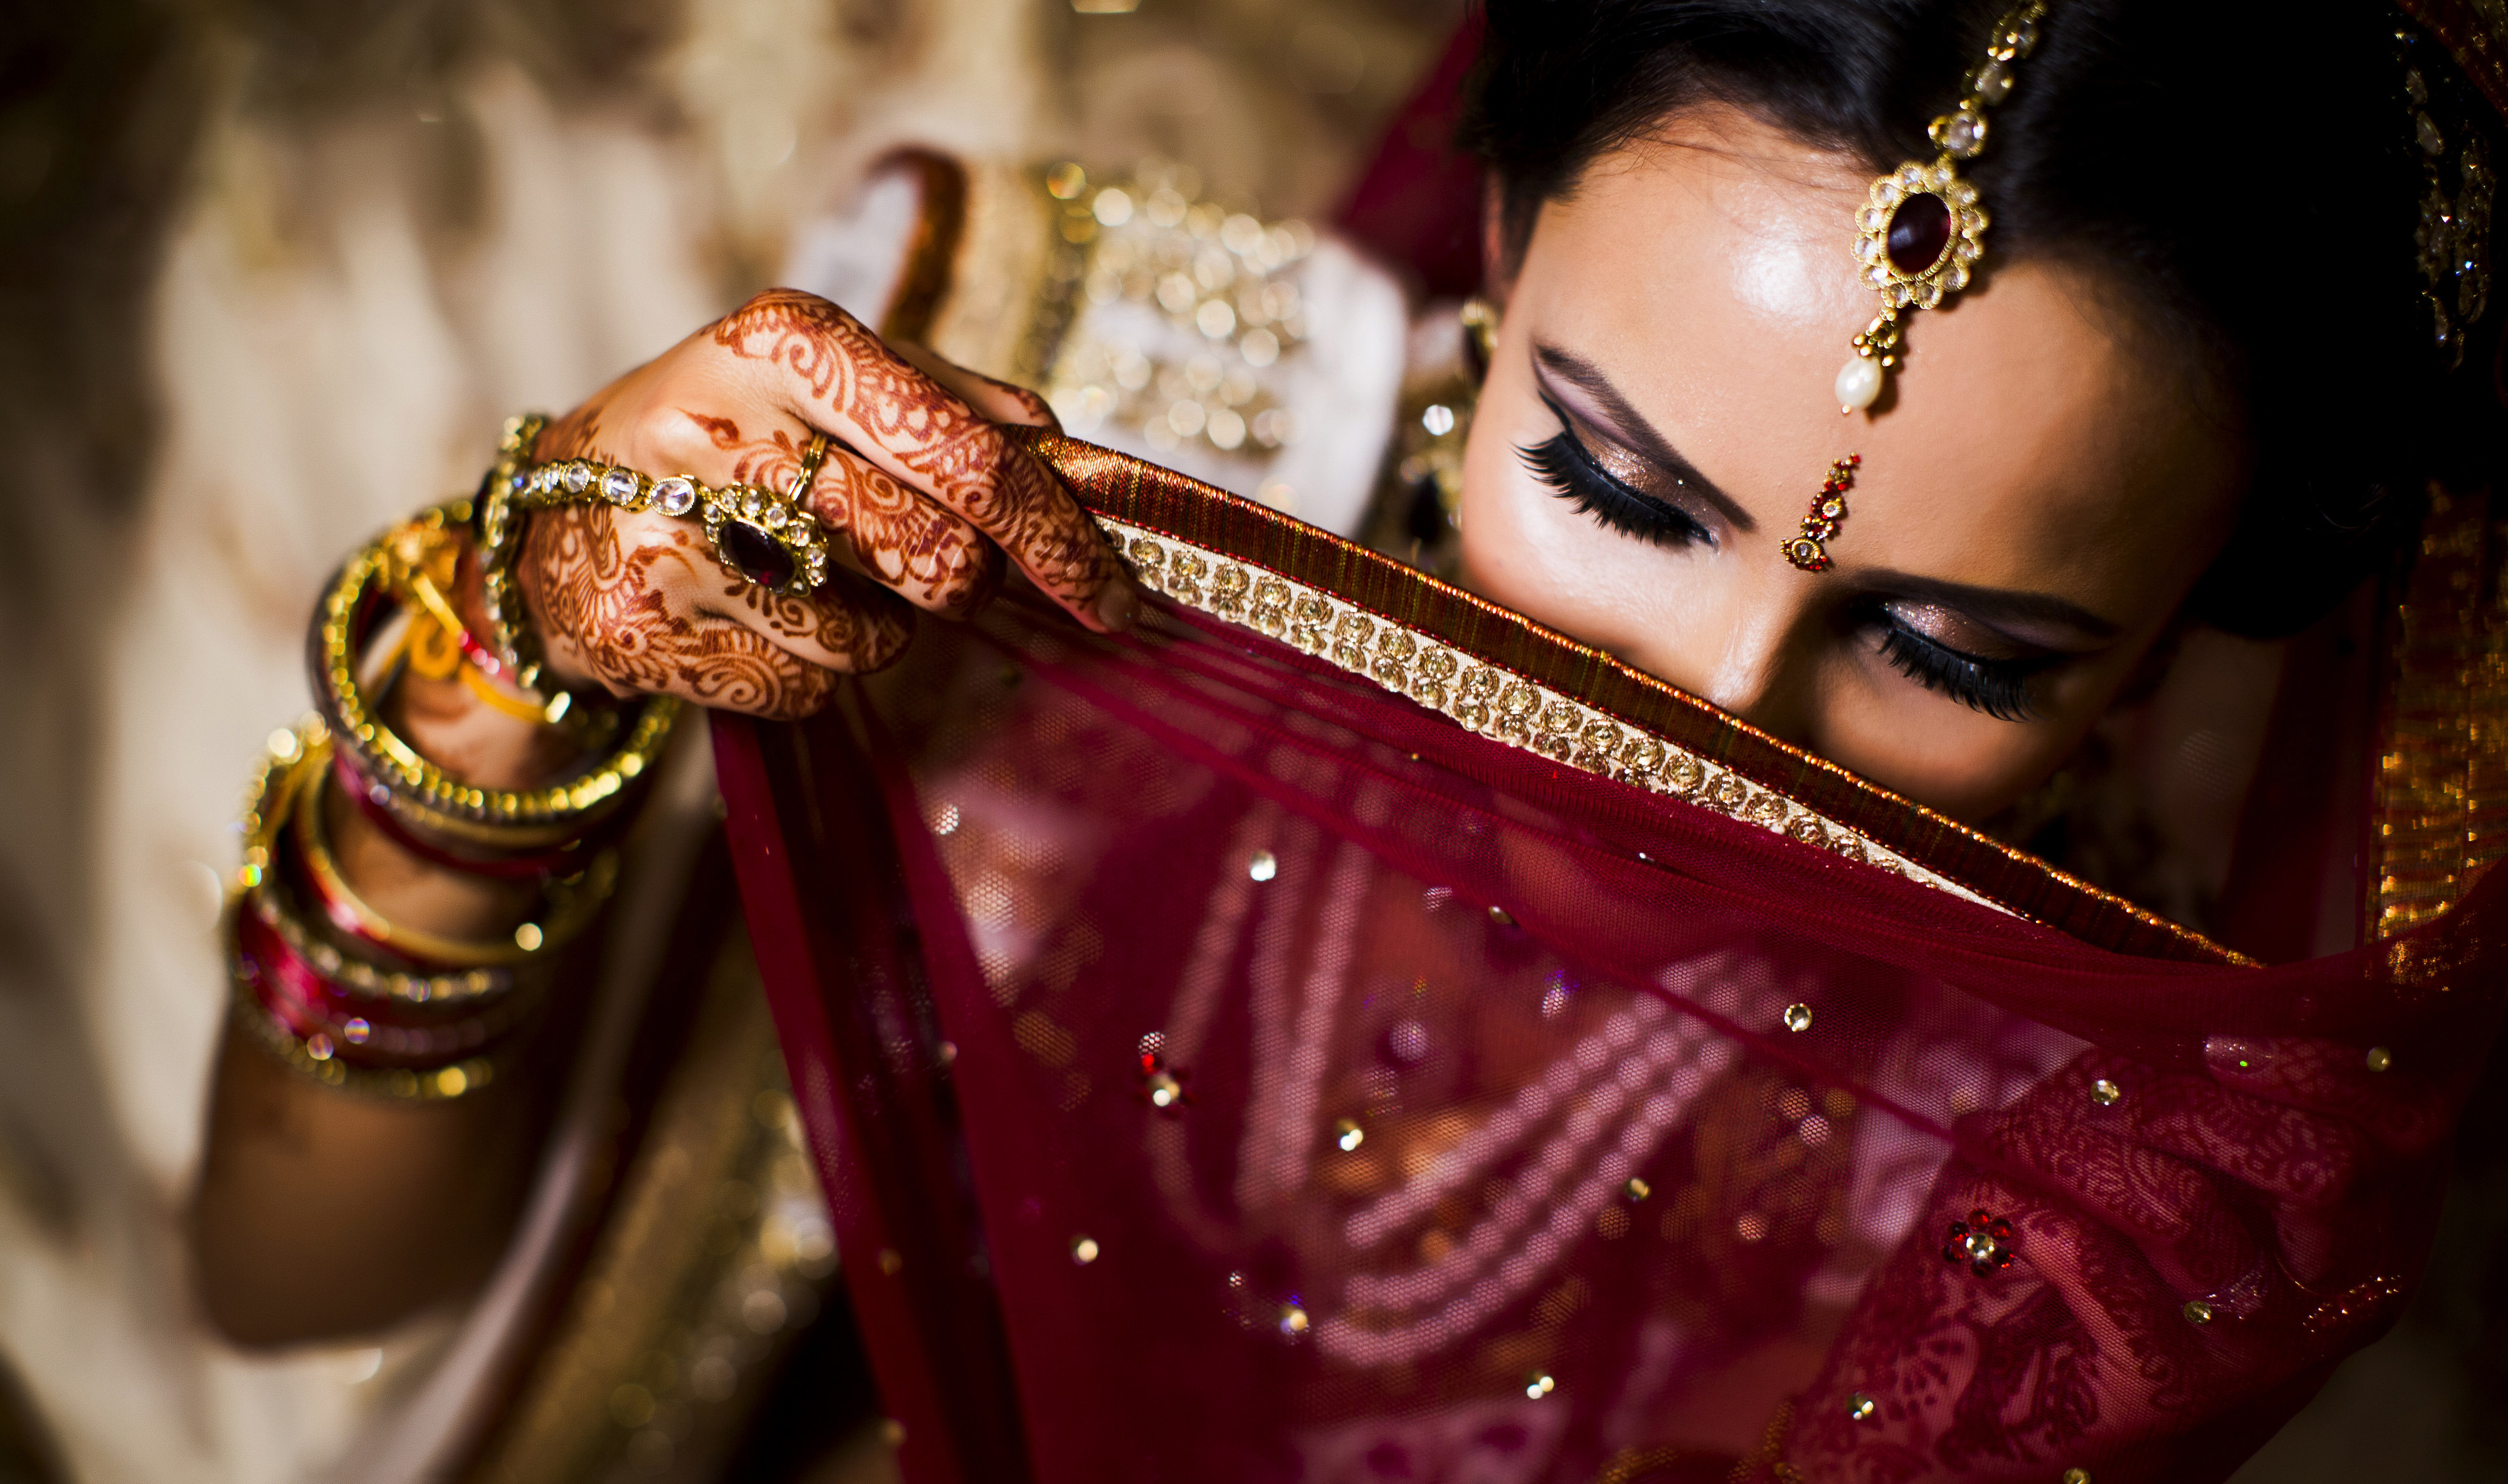 Indian shy bride at her wedding